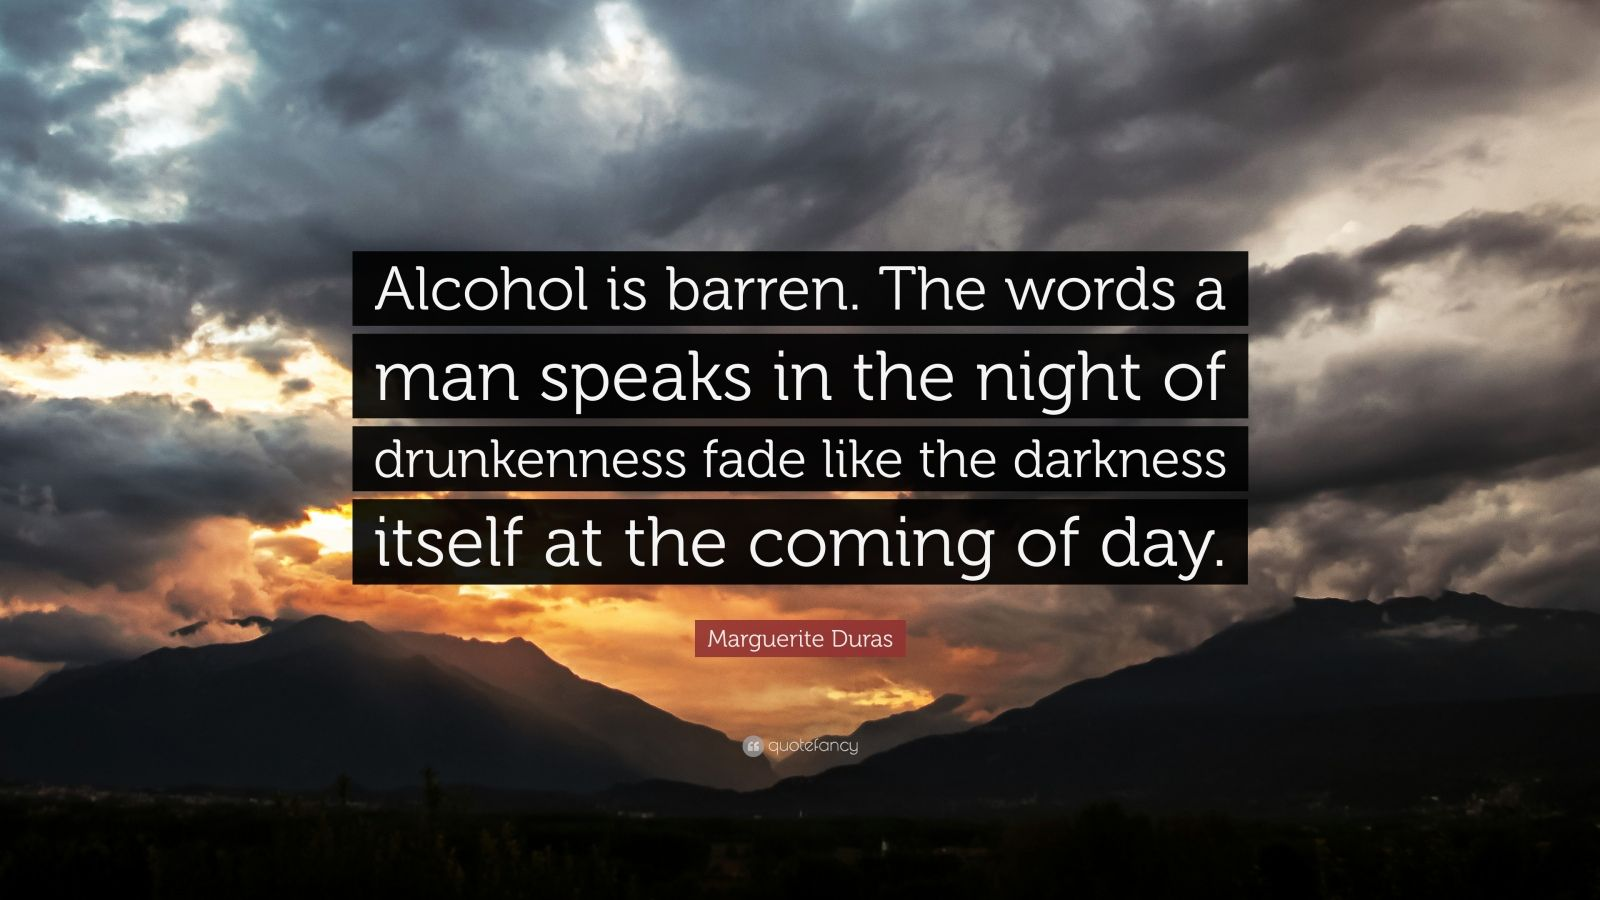 """Marguerite Duras Quote: """"Alcohol is barren. The words a man speaks in the night of drunkenness fade like the darkness itself at the coming of day."""""""